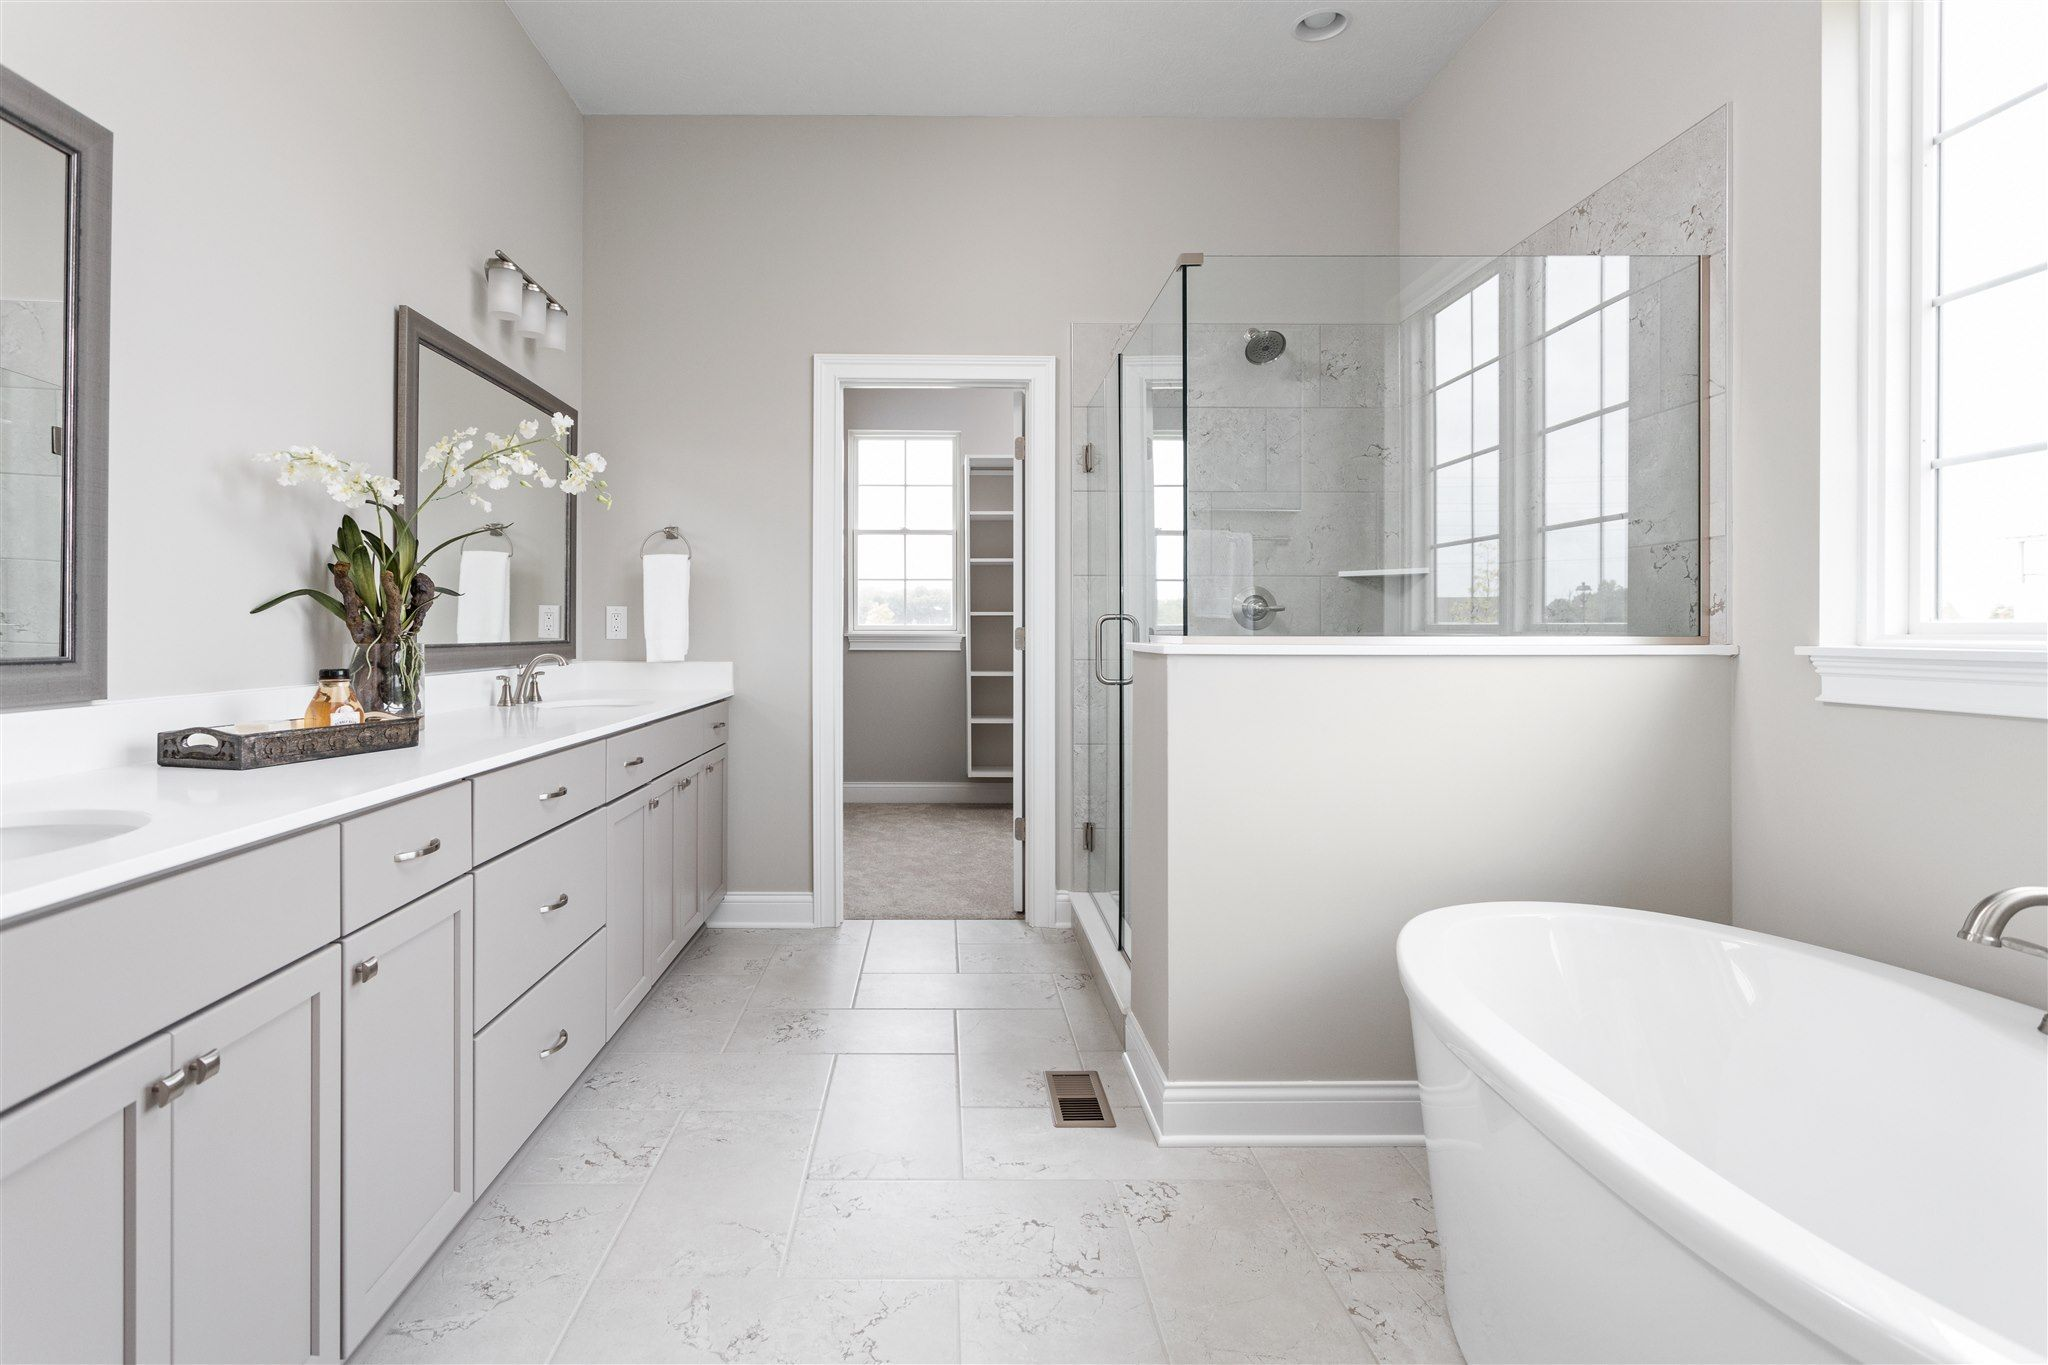 Bathroom featured in the Lockerbie 331 By Estridge Homes in Indianapolis, IN